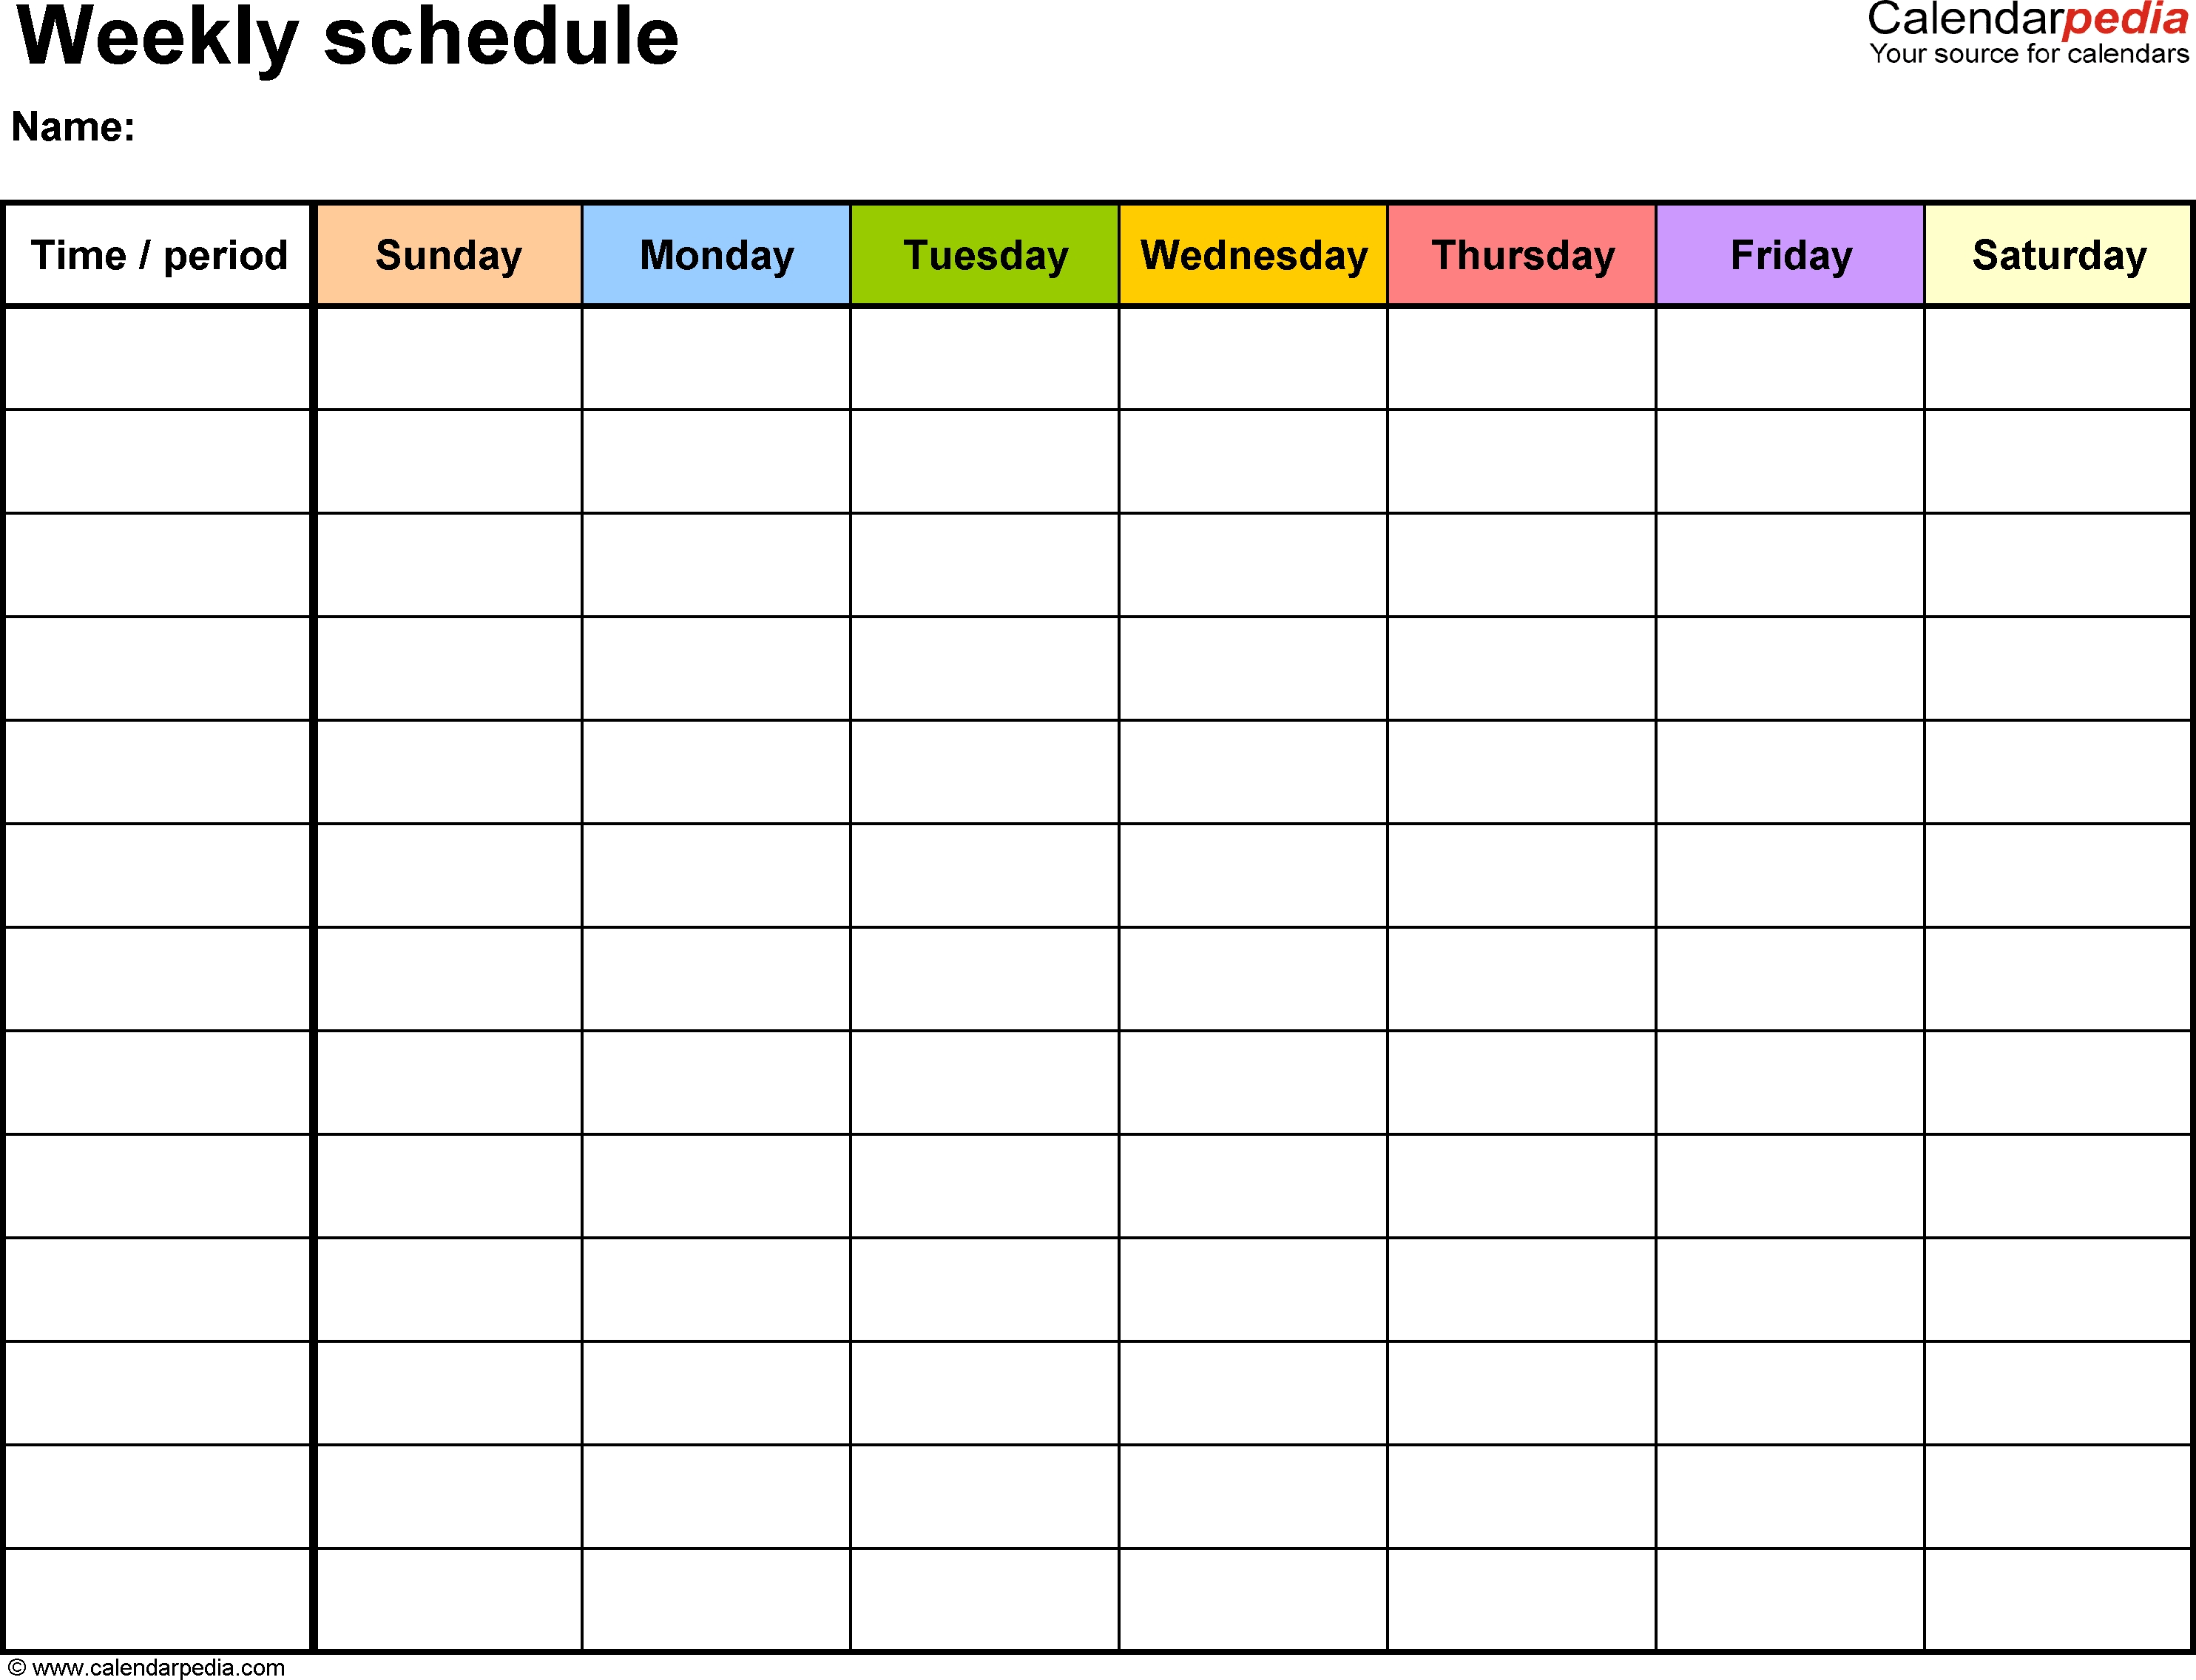 Free Weekly Schedule Templates For Excel - 18 Templates  Blank Printable Weekly Calendars Templates